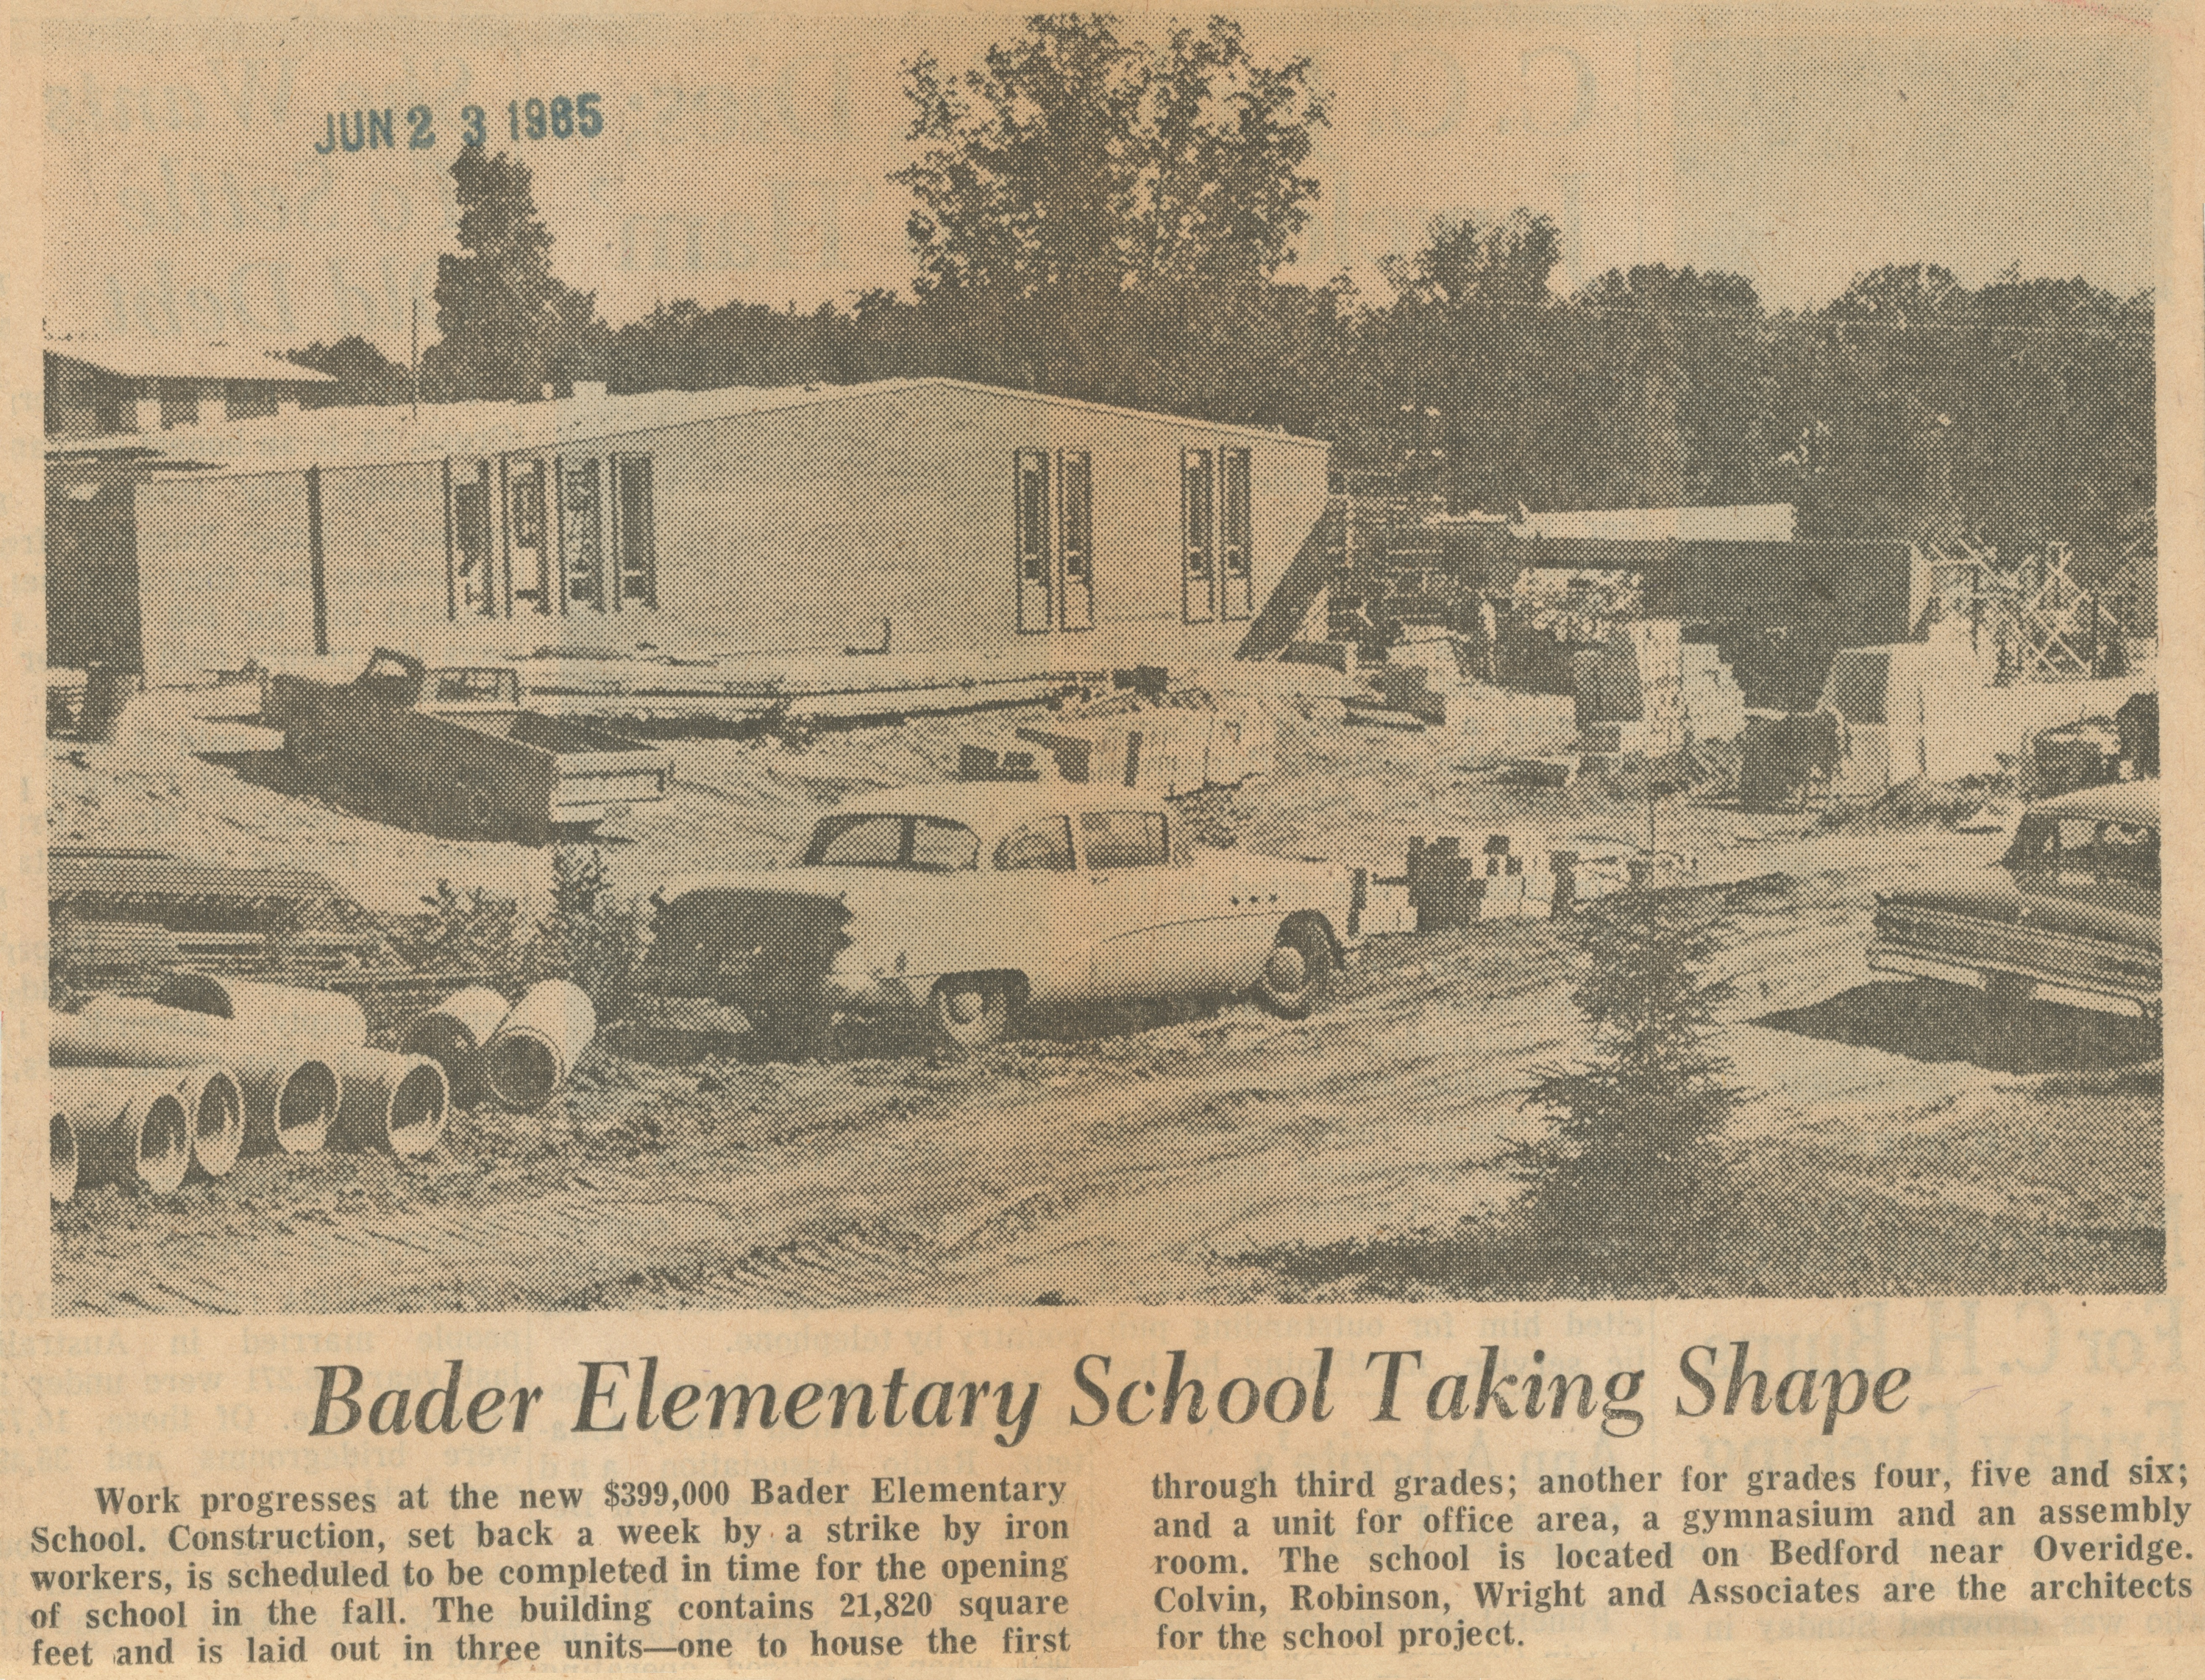 Bader Elementary School Taking Shape image